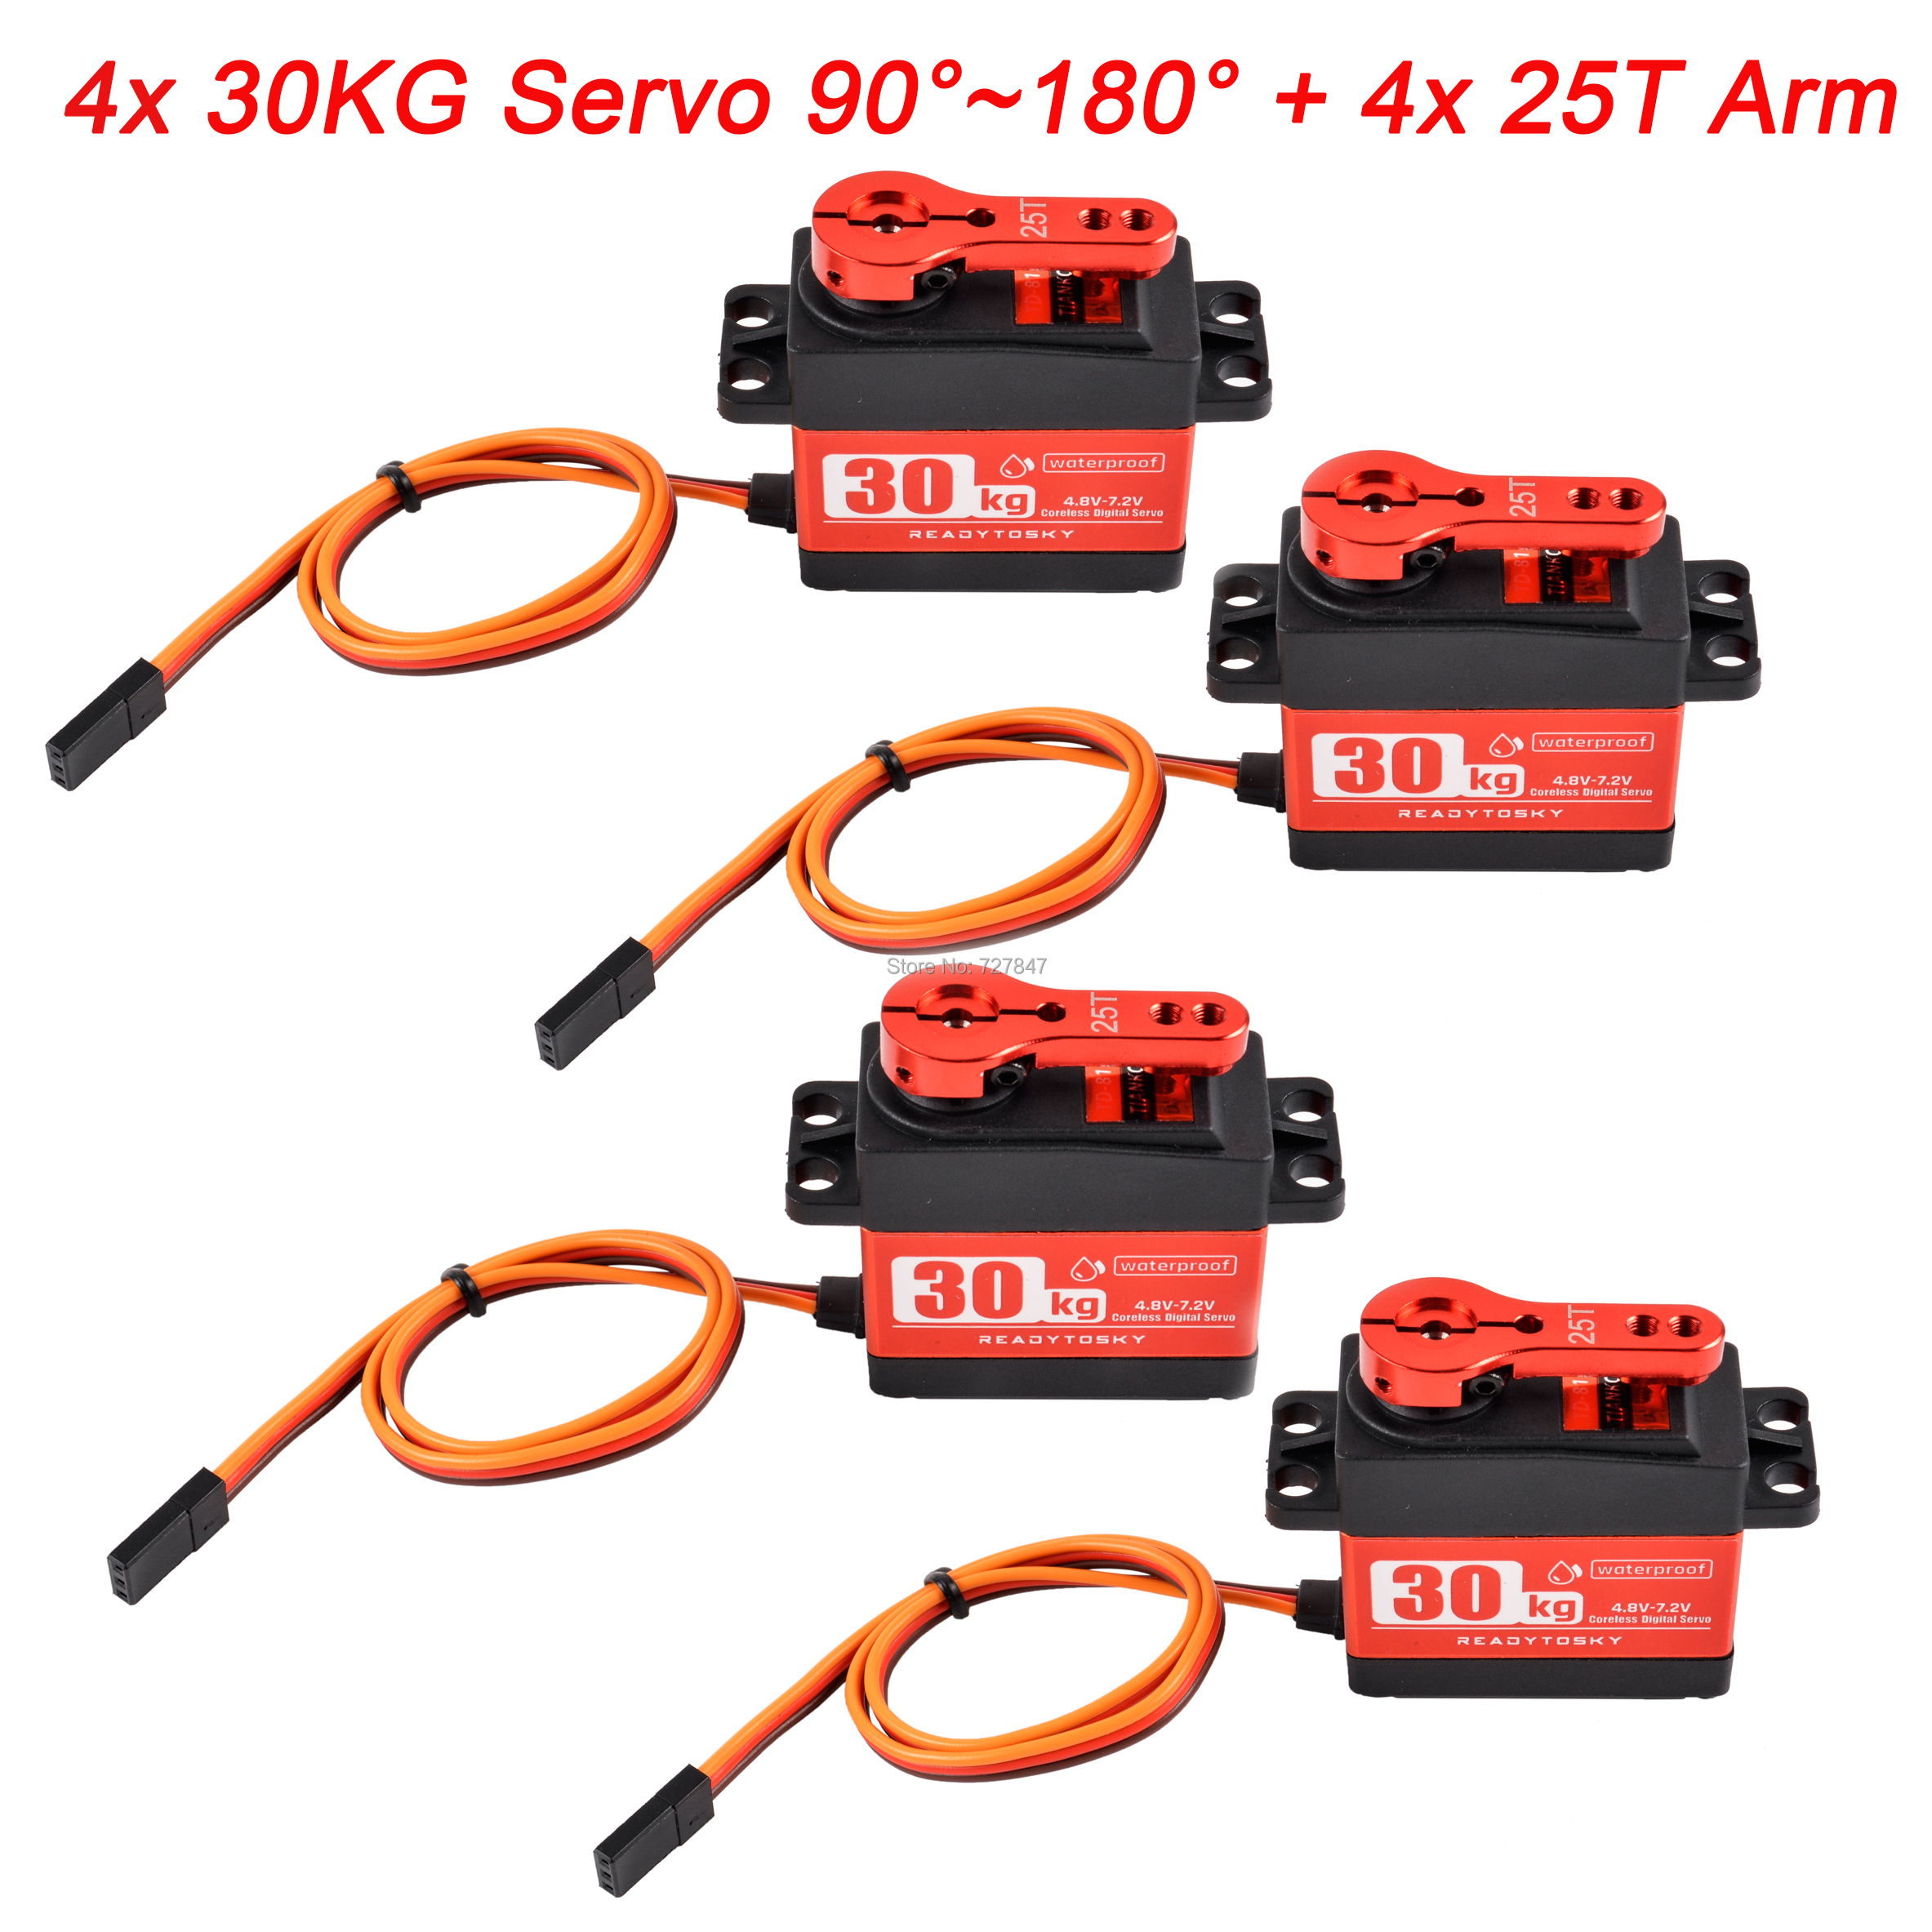 Update 180 Degree RC Servo 20KG / 25KG / 30KG Full Metal Gear Digital Servo Baja Waterproof Of Version 25T Arm For Cars RC Toy